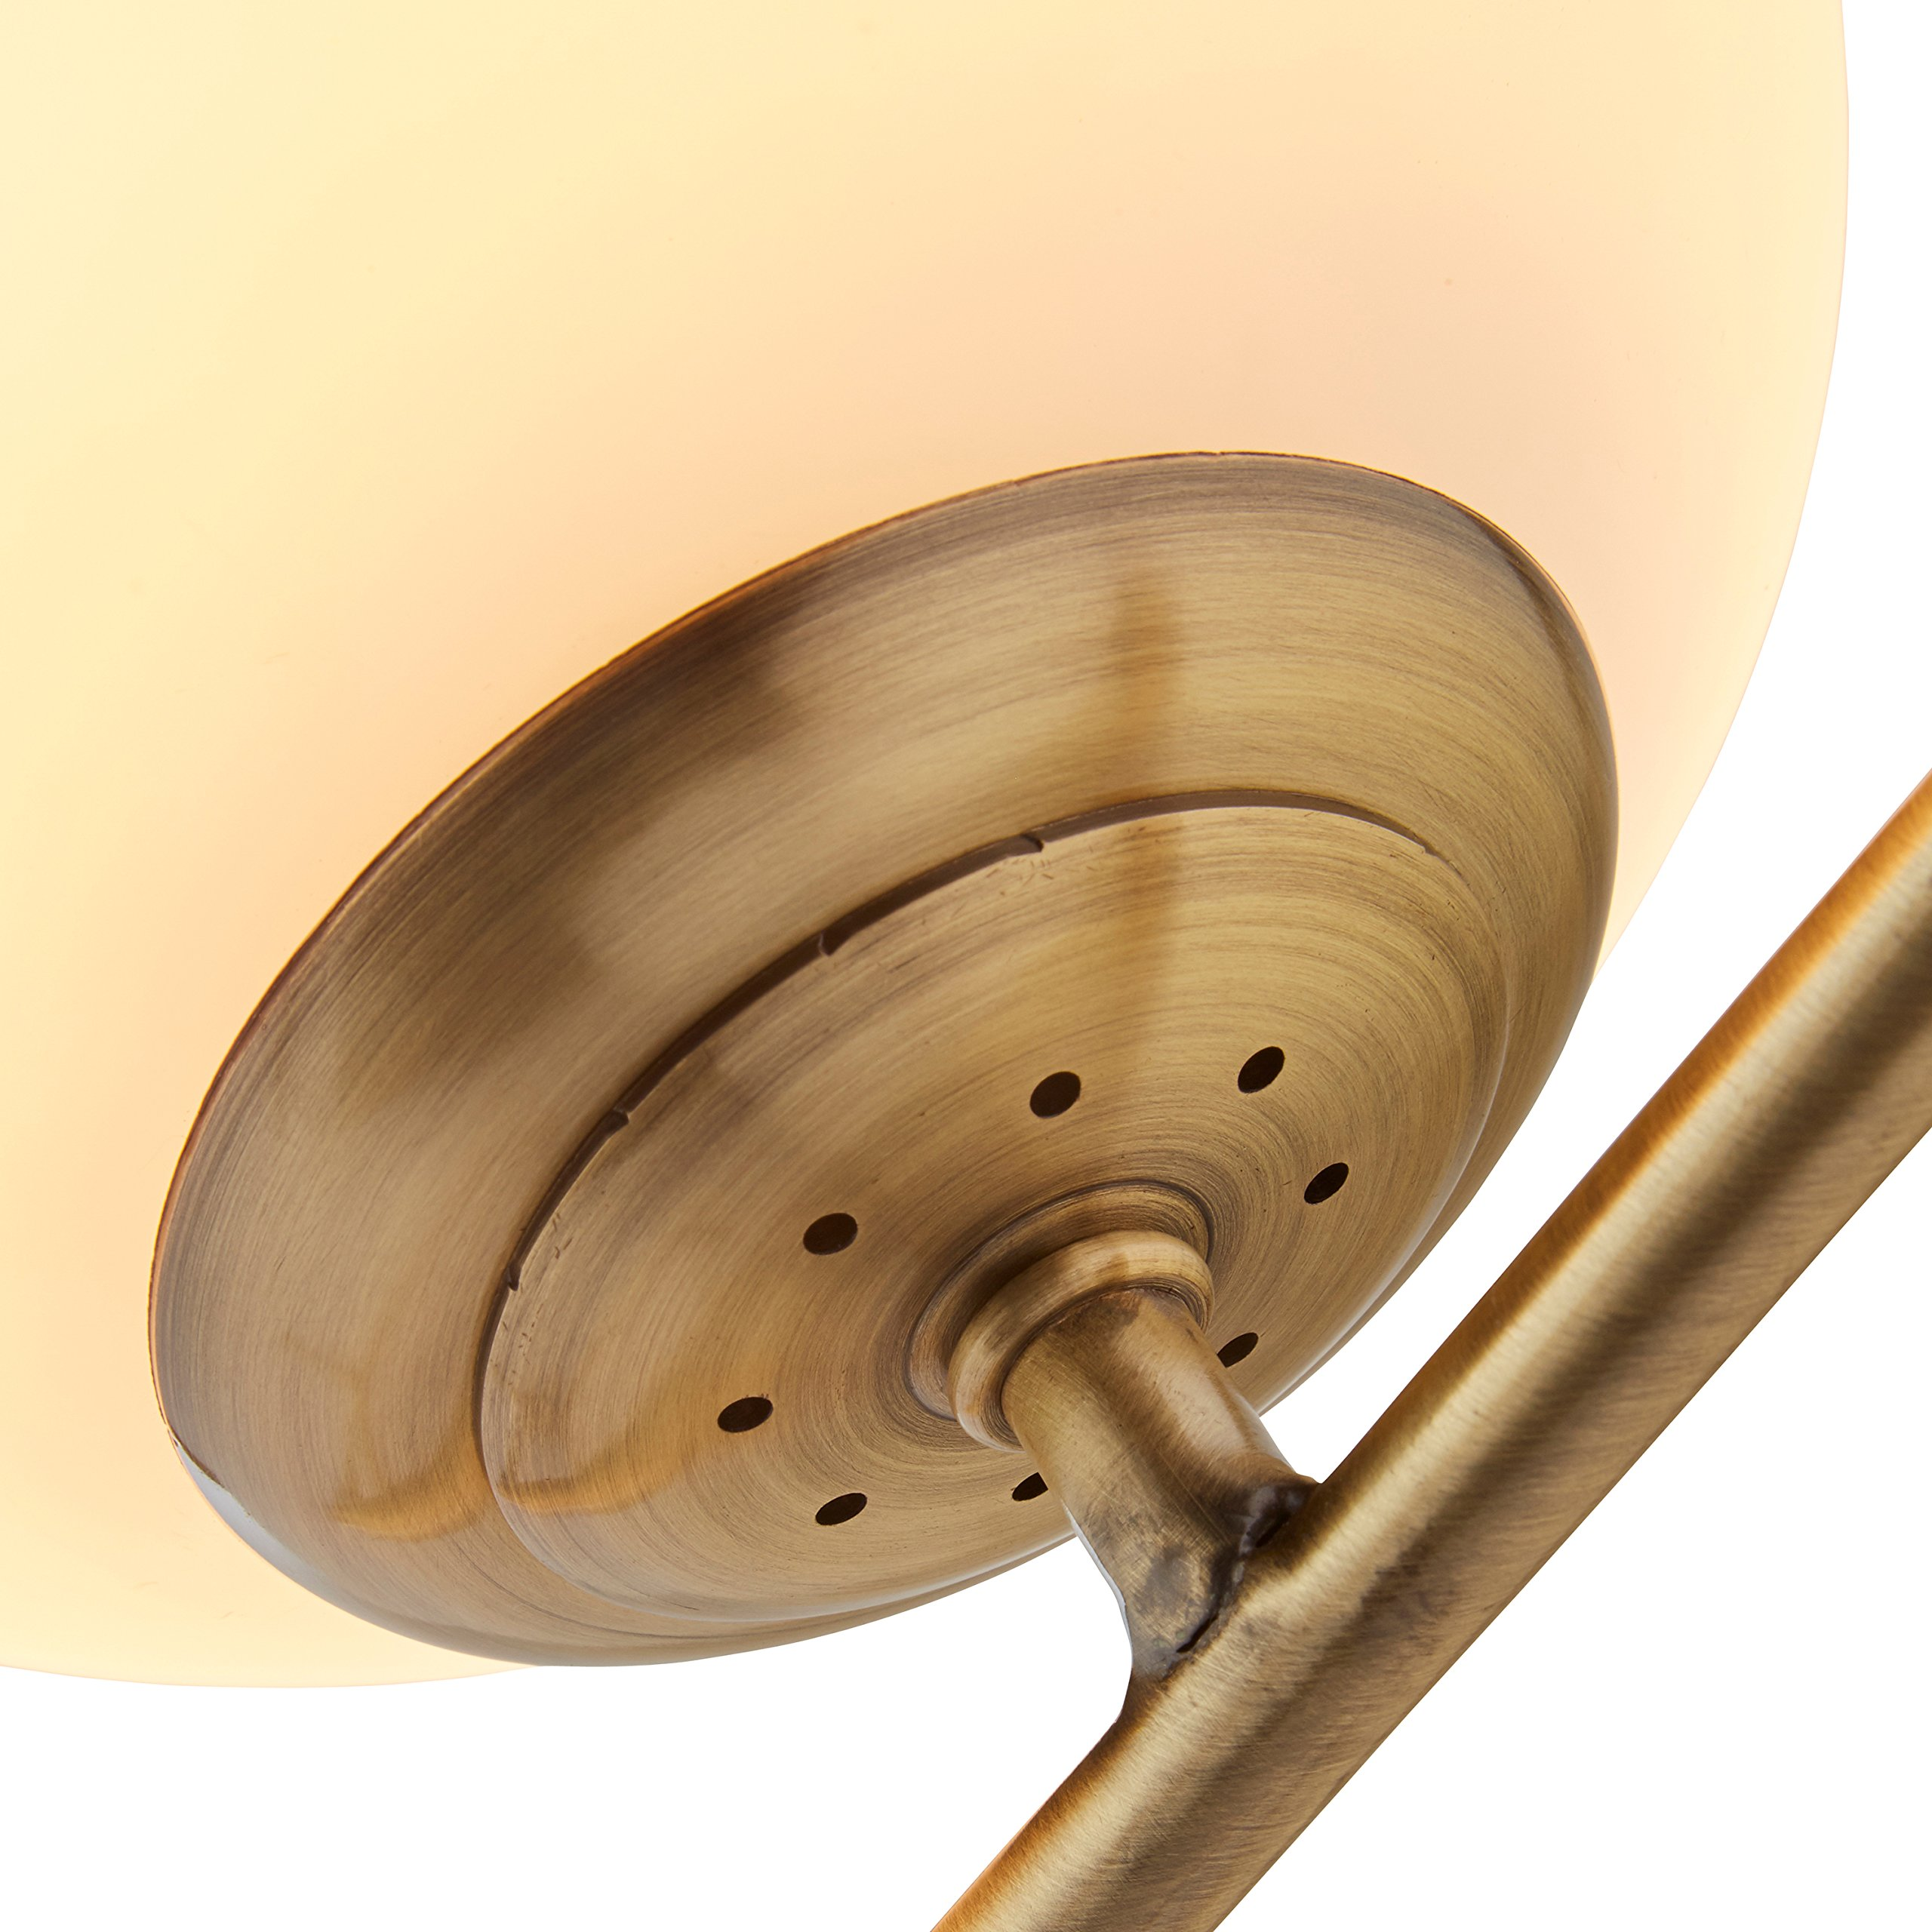 Rivet Glass Ball and Angled Metal Table Lamp with Bulb, 21.5''H, Brass by Rivet (Image #2)